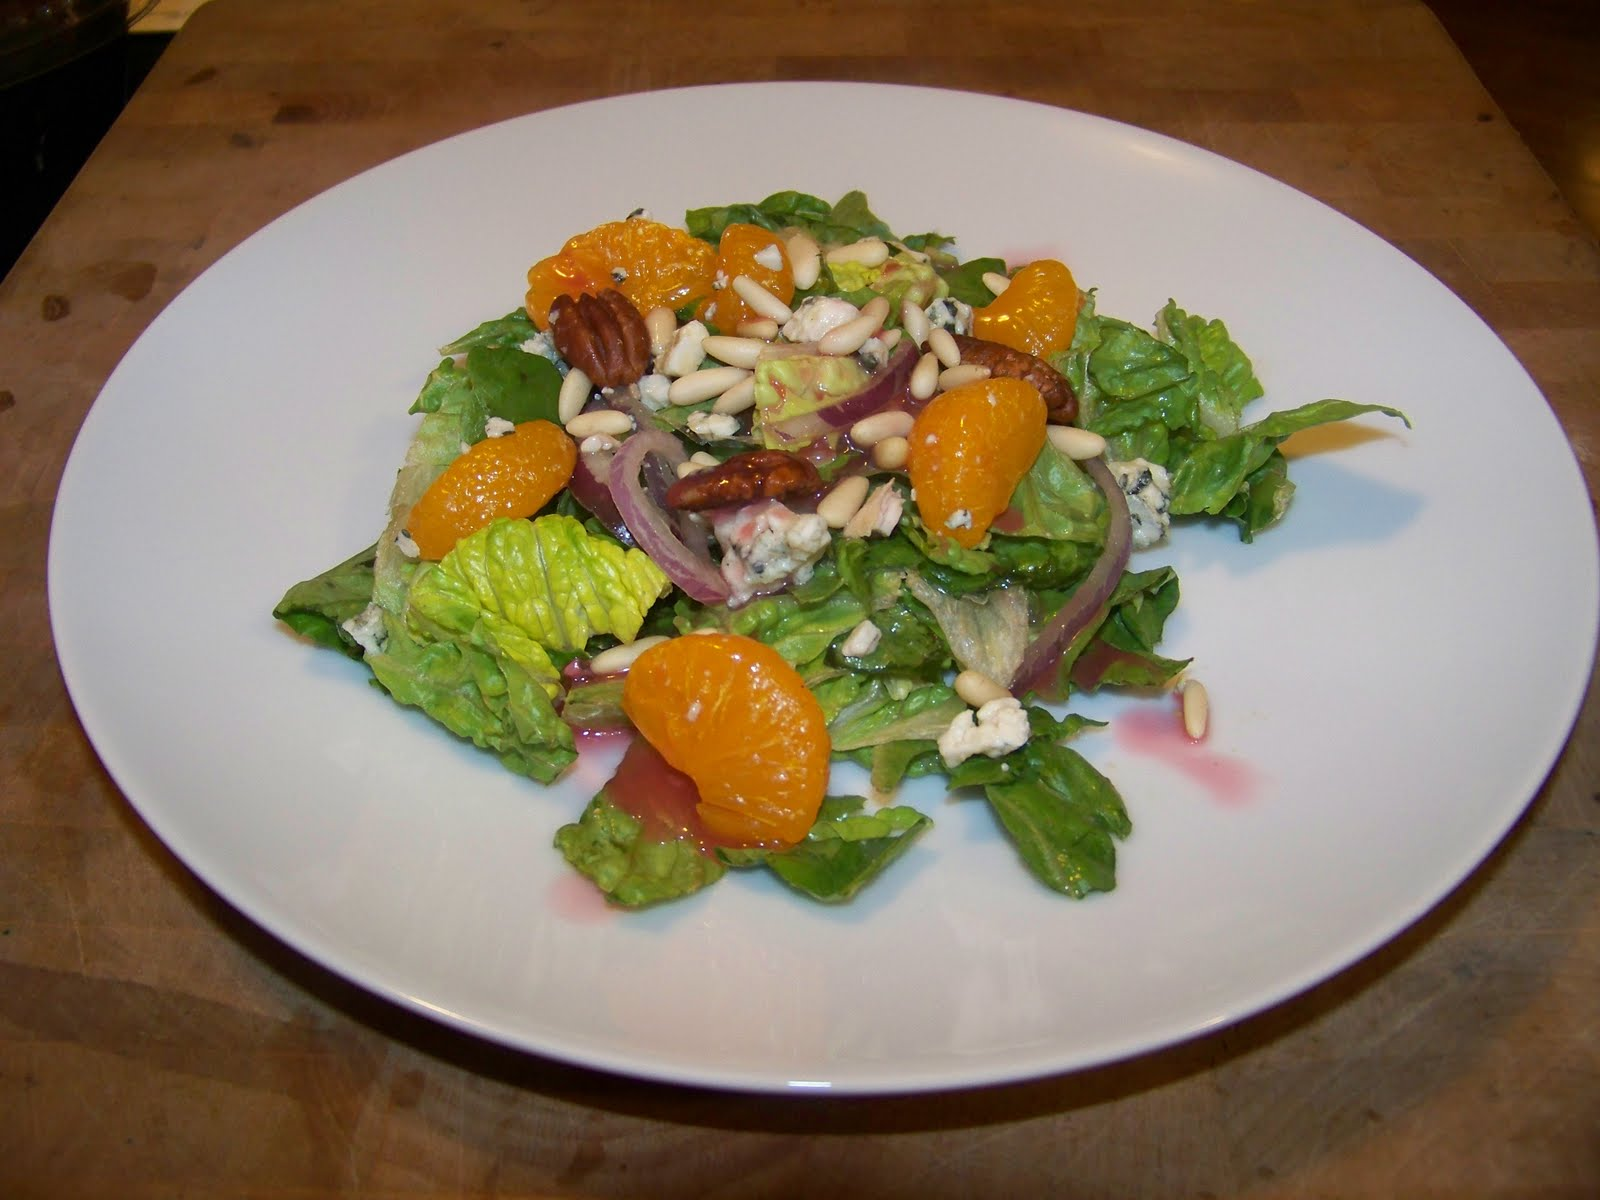 lettuce salad with mandarin oranges